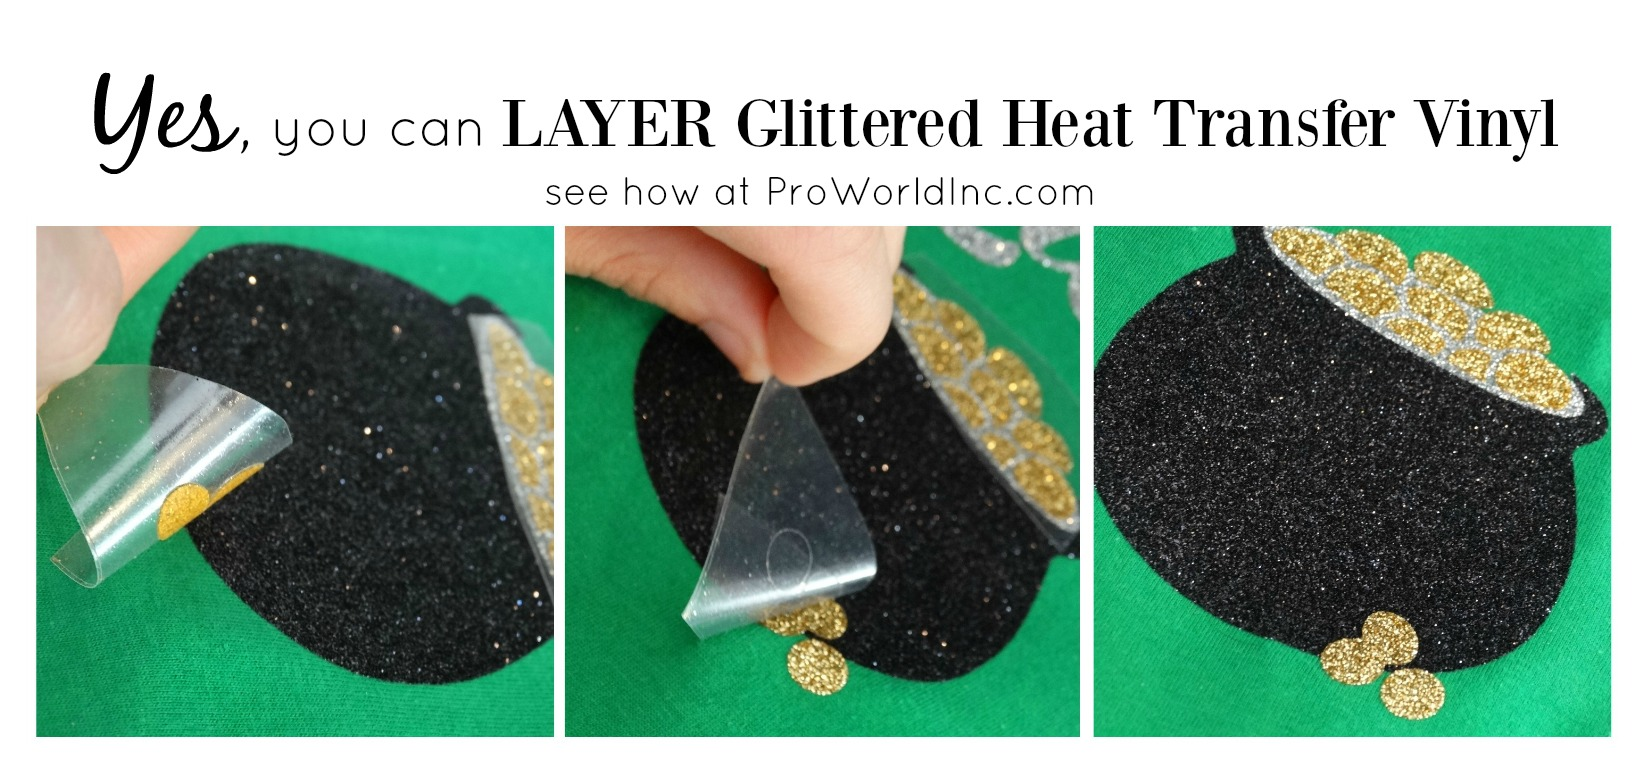 yes you can layer glittered HTV see how at @proworldinc